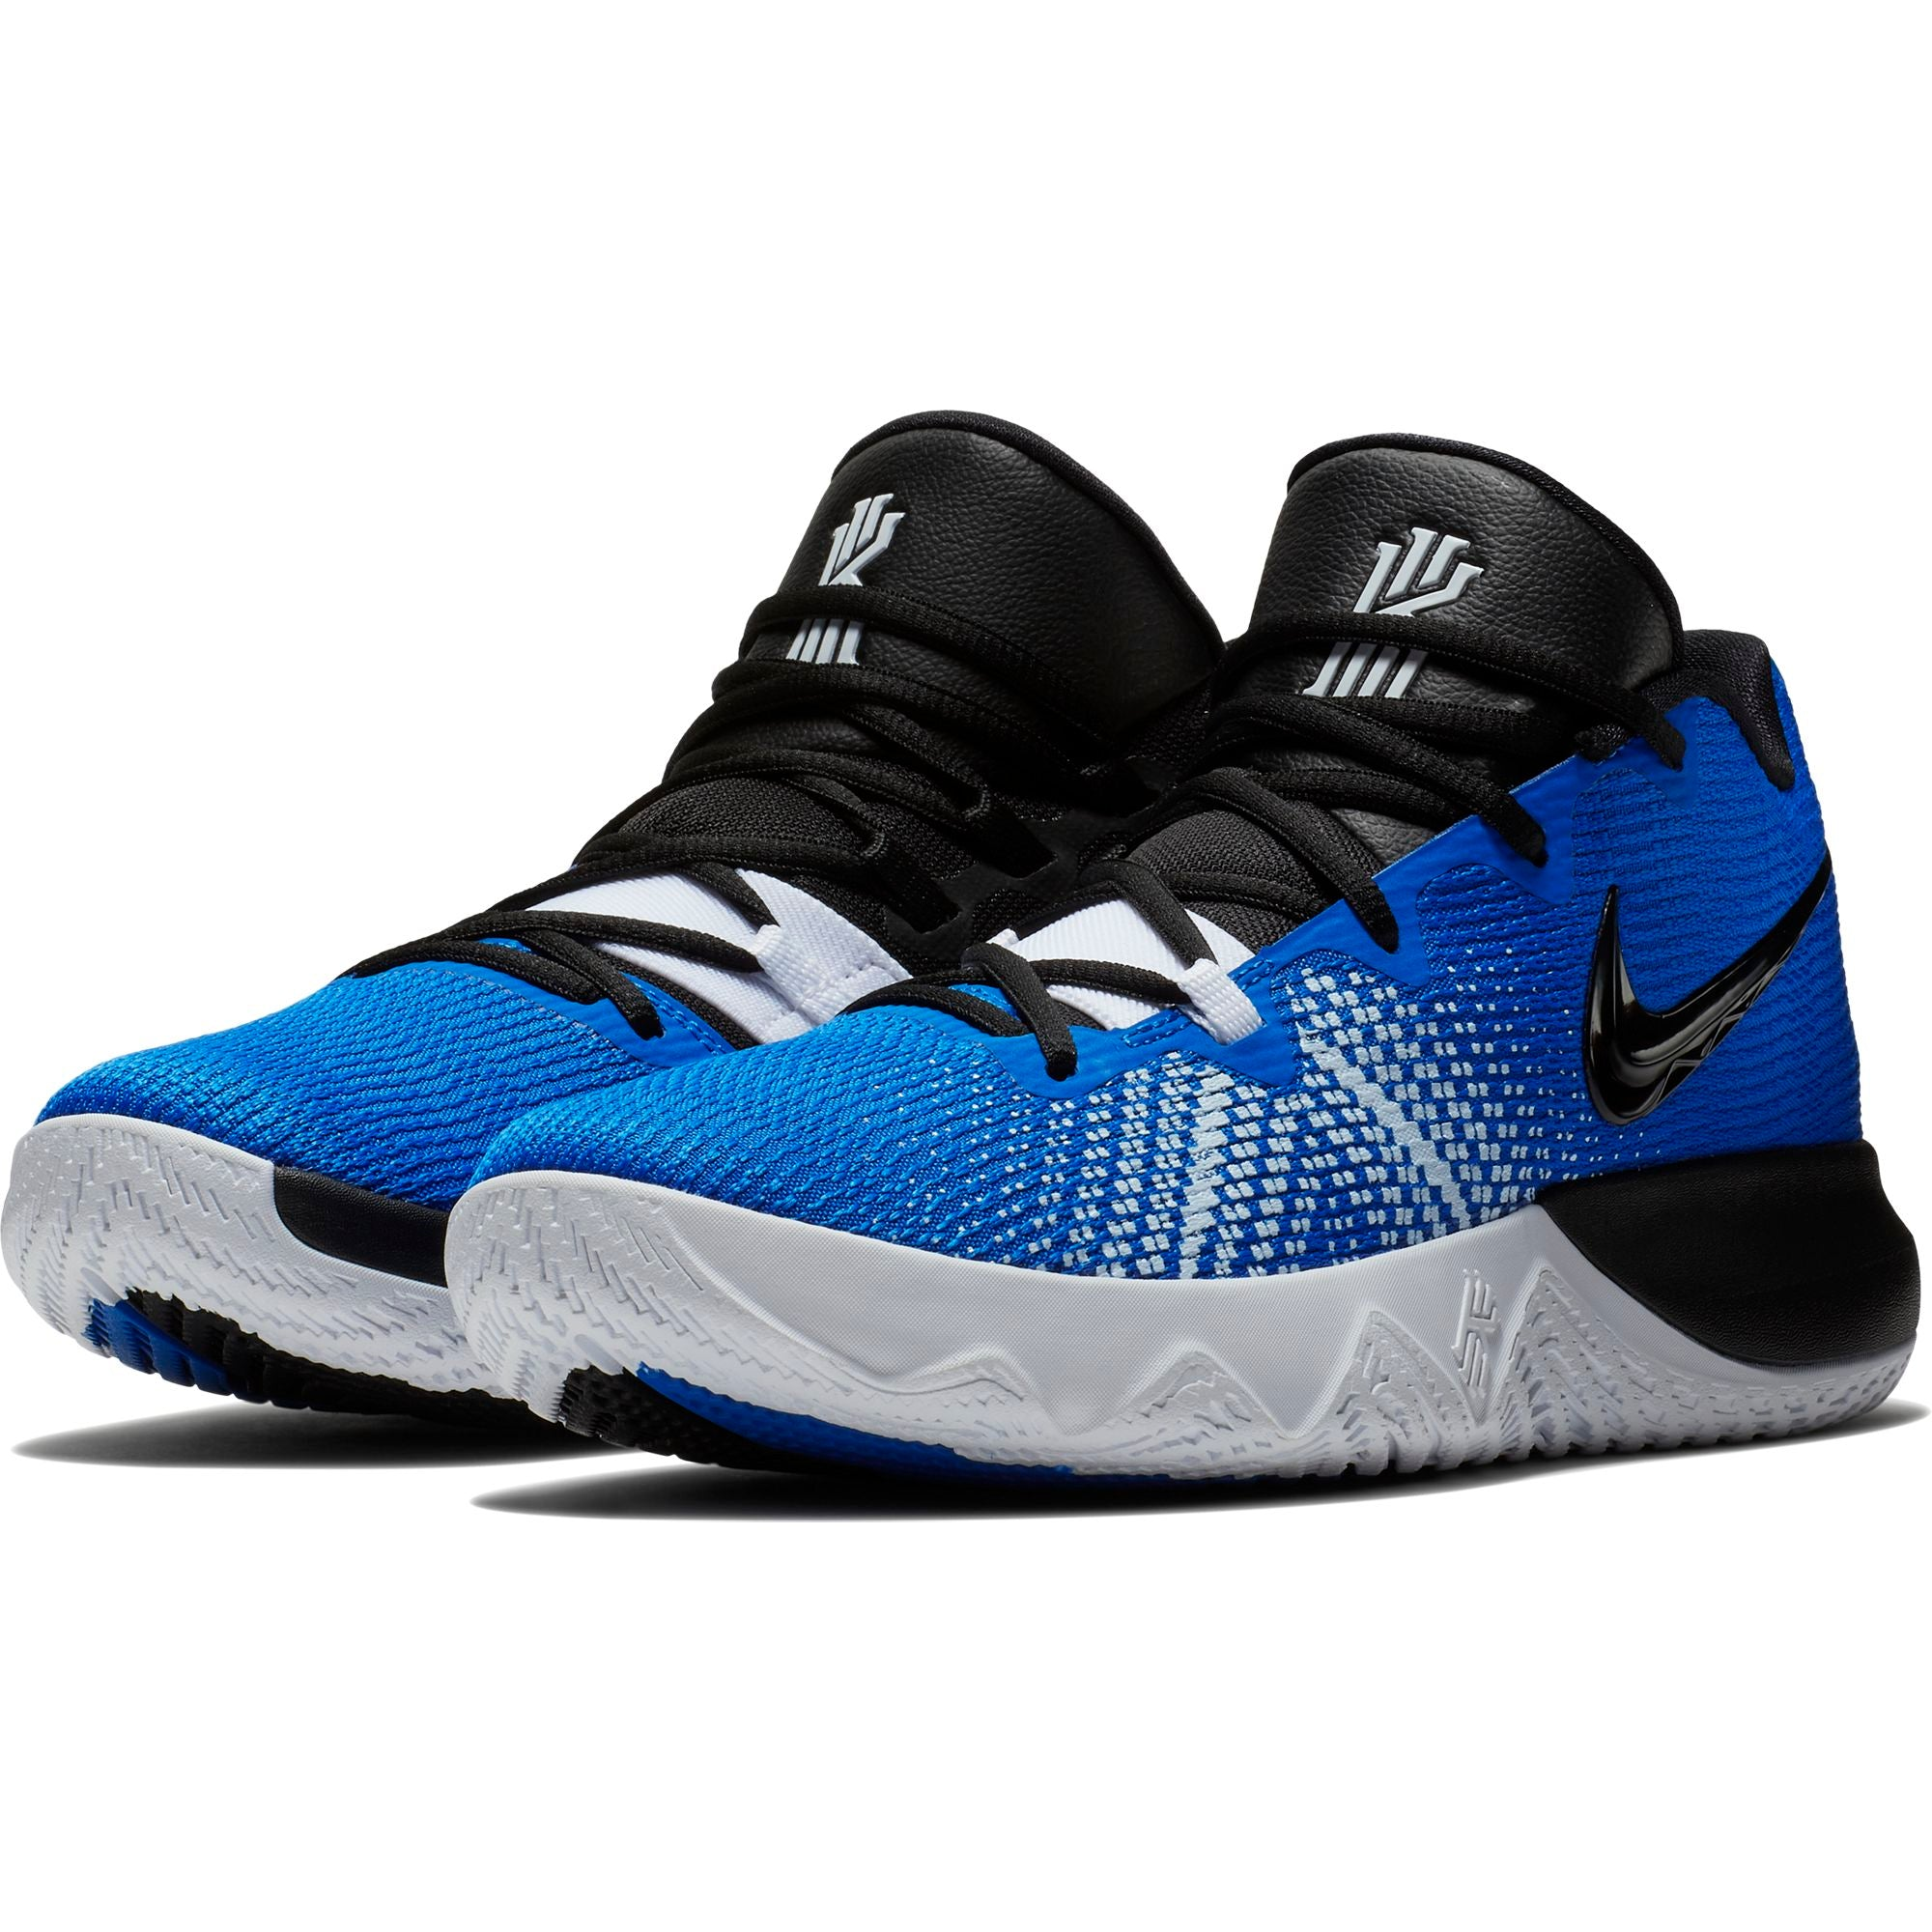 Nike Kyrie Flytrap Basketball Boot/Shoe - Hyper Cobalt/Black/White